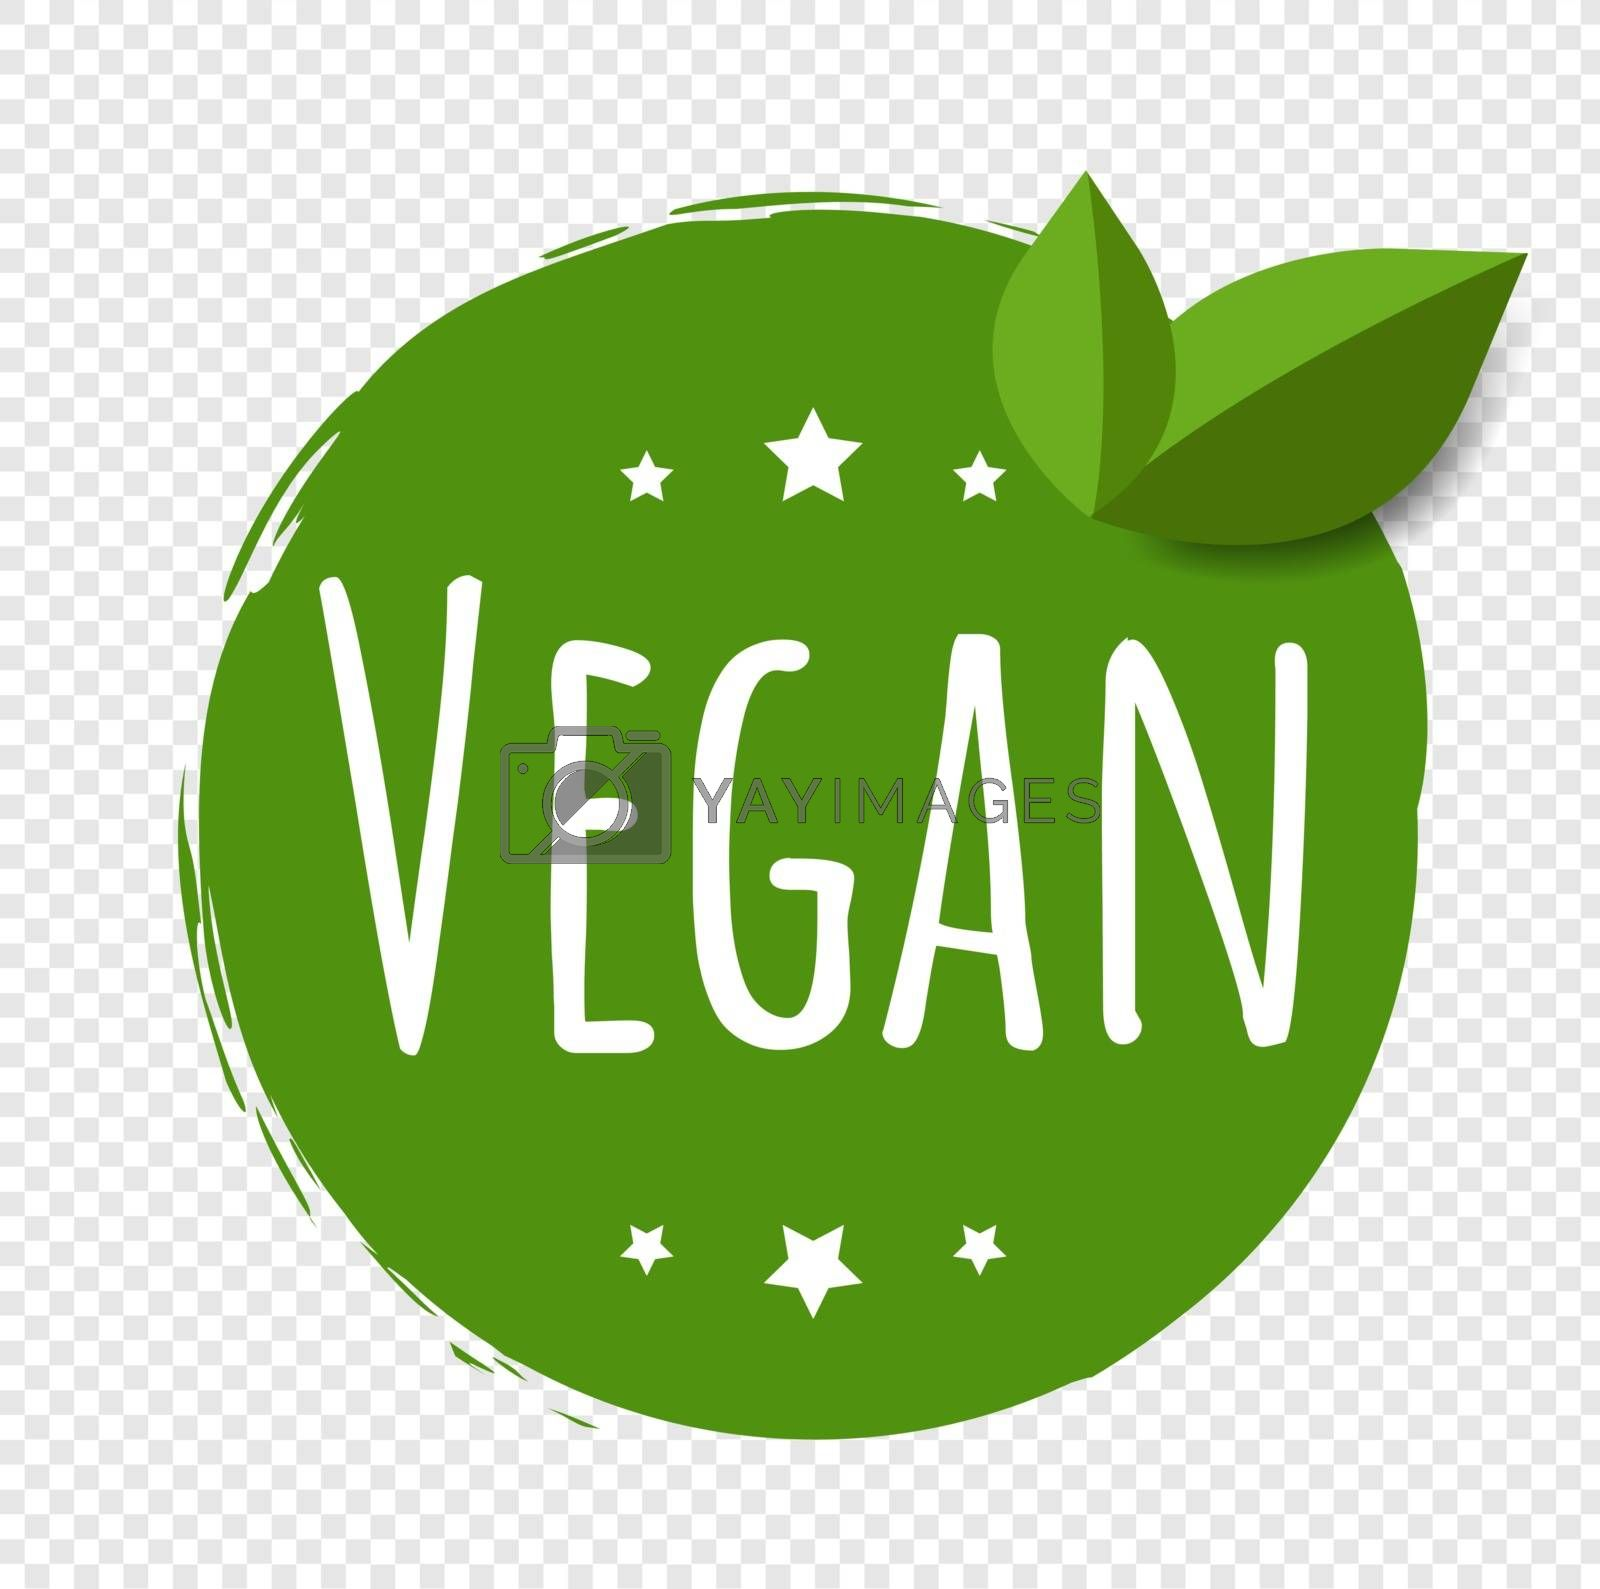 Vegan Label Isolated Transparent Background With Gradient Mesh, Vector Illustration